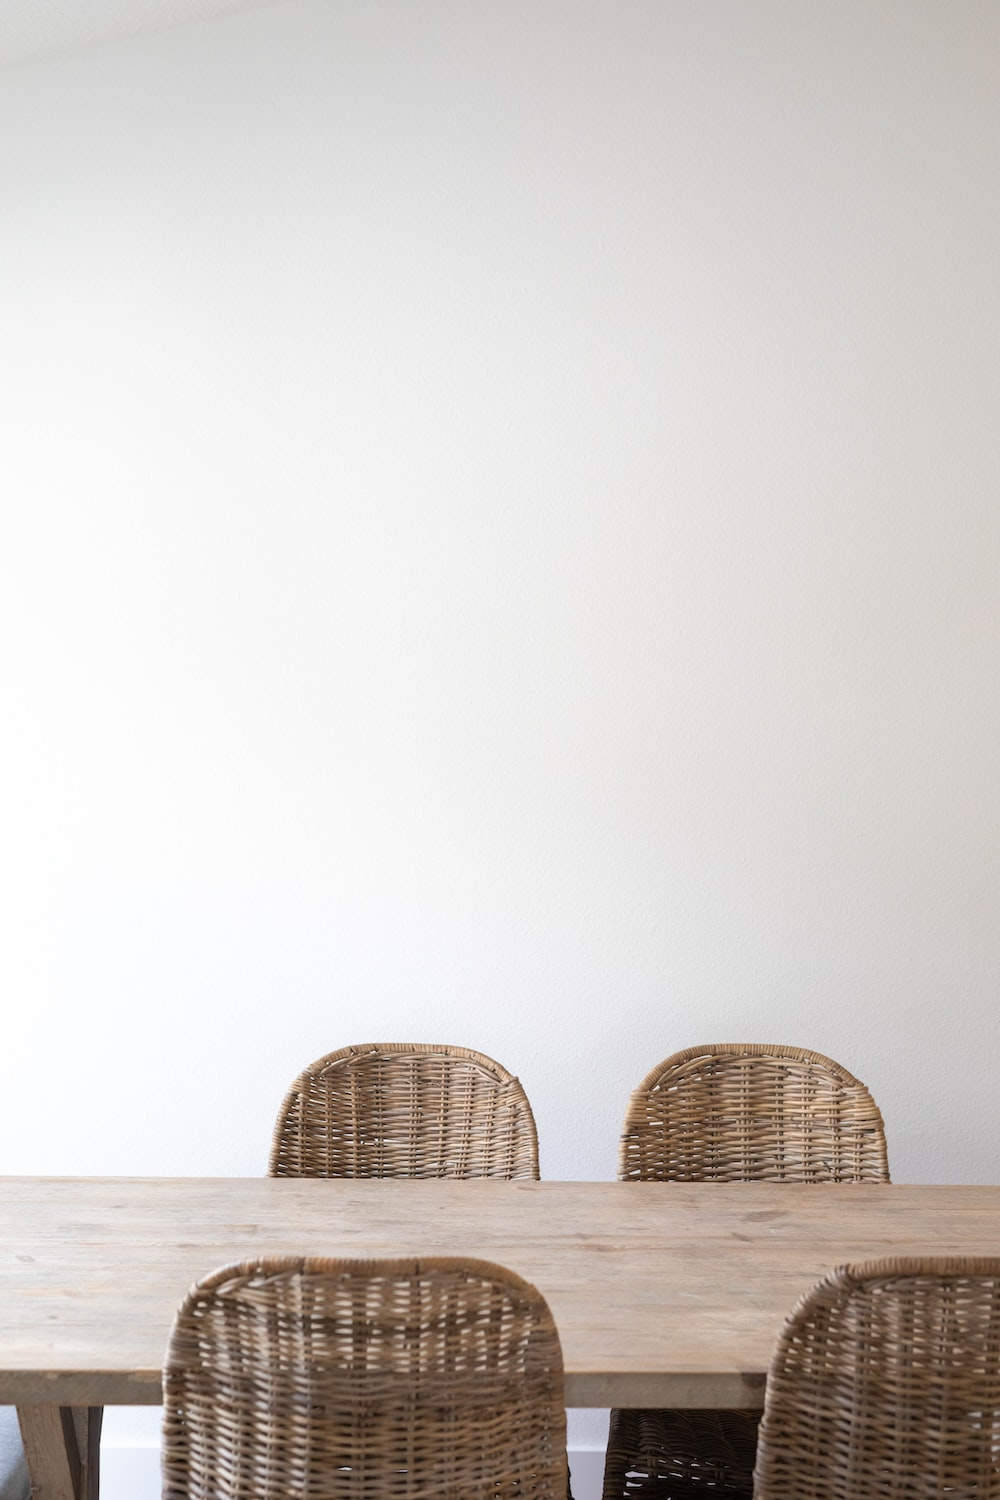 brown wicker chairs on white sand